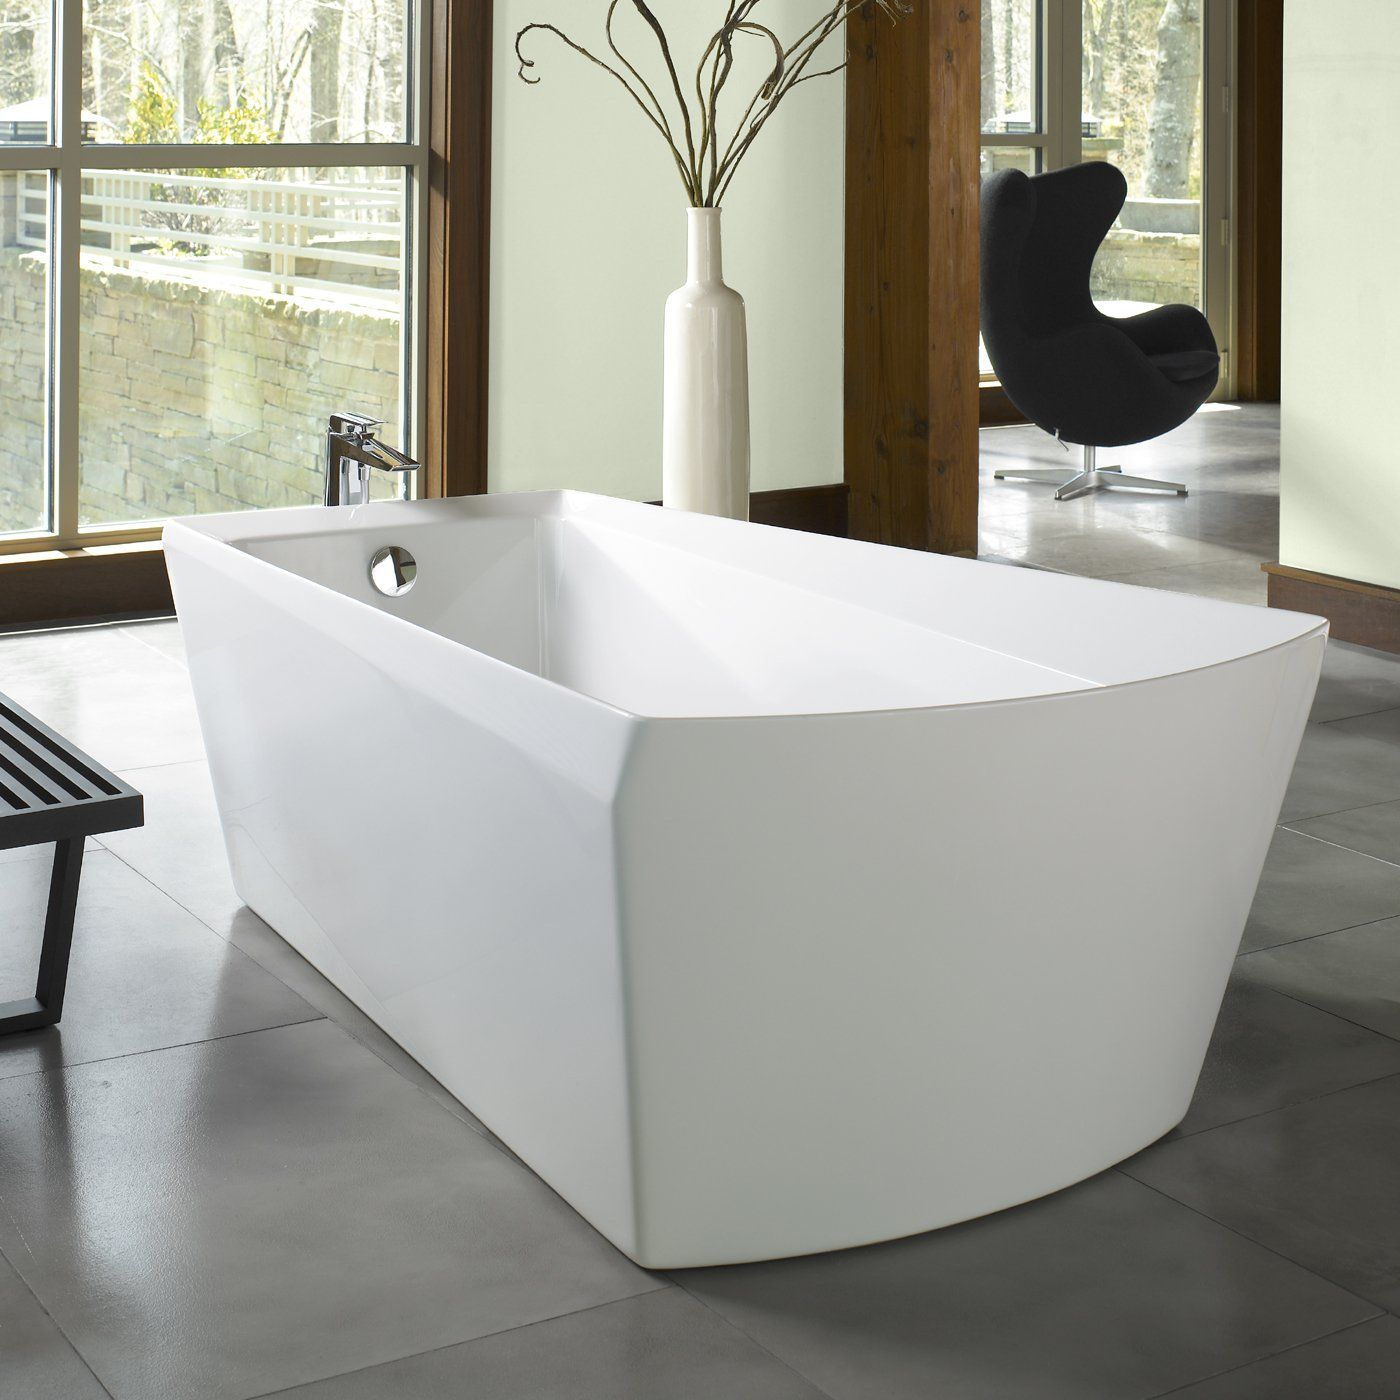 Toto Soiree Freestanding Bath www.lightsofoconee.com | Tubs to Soak ...